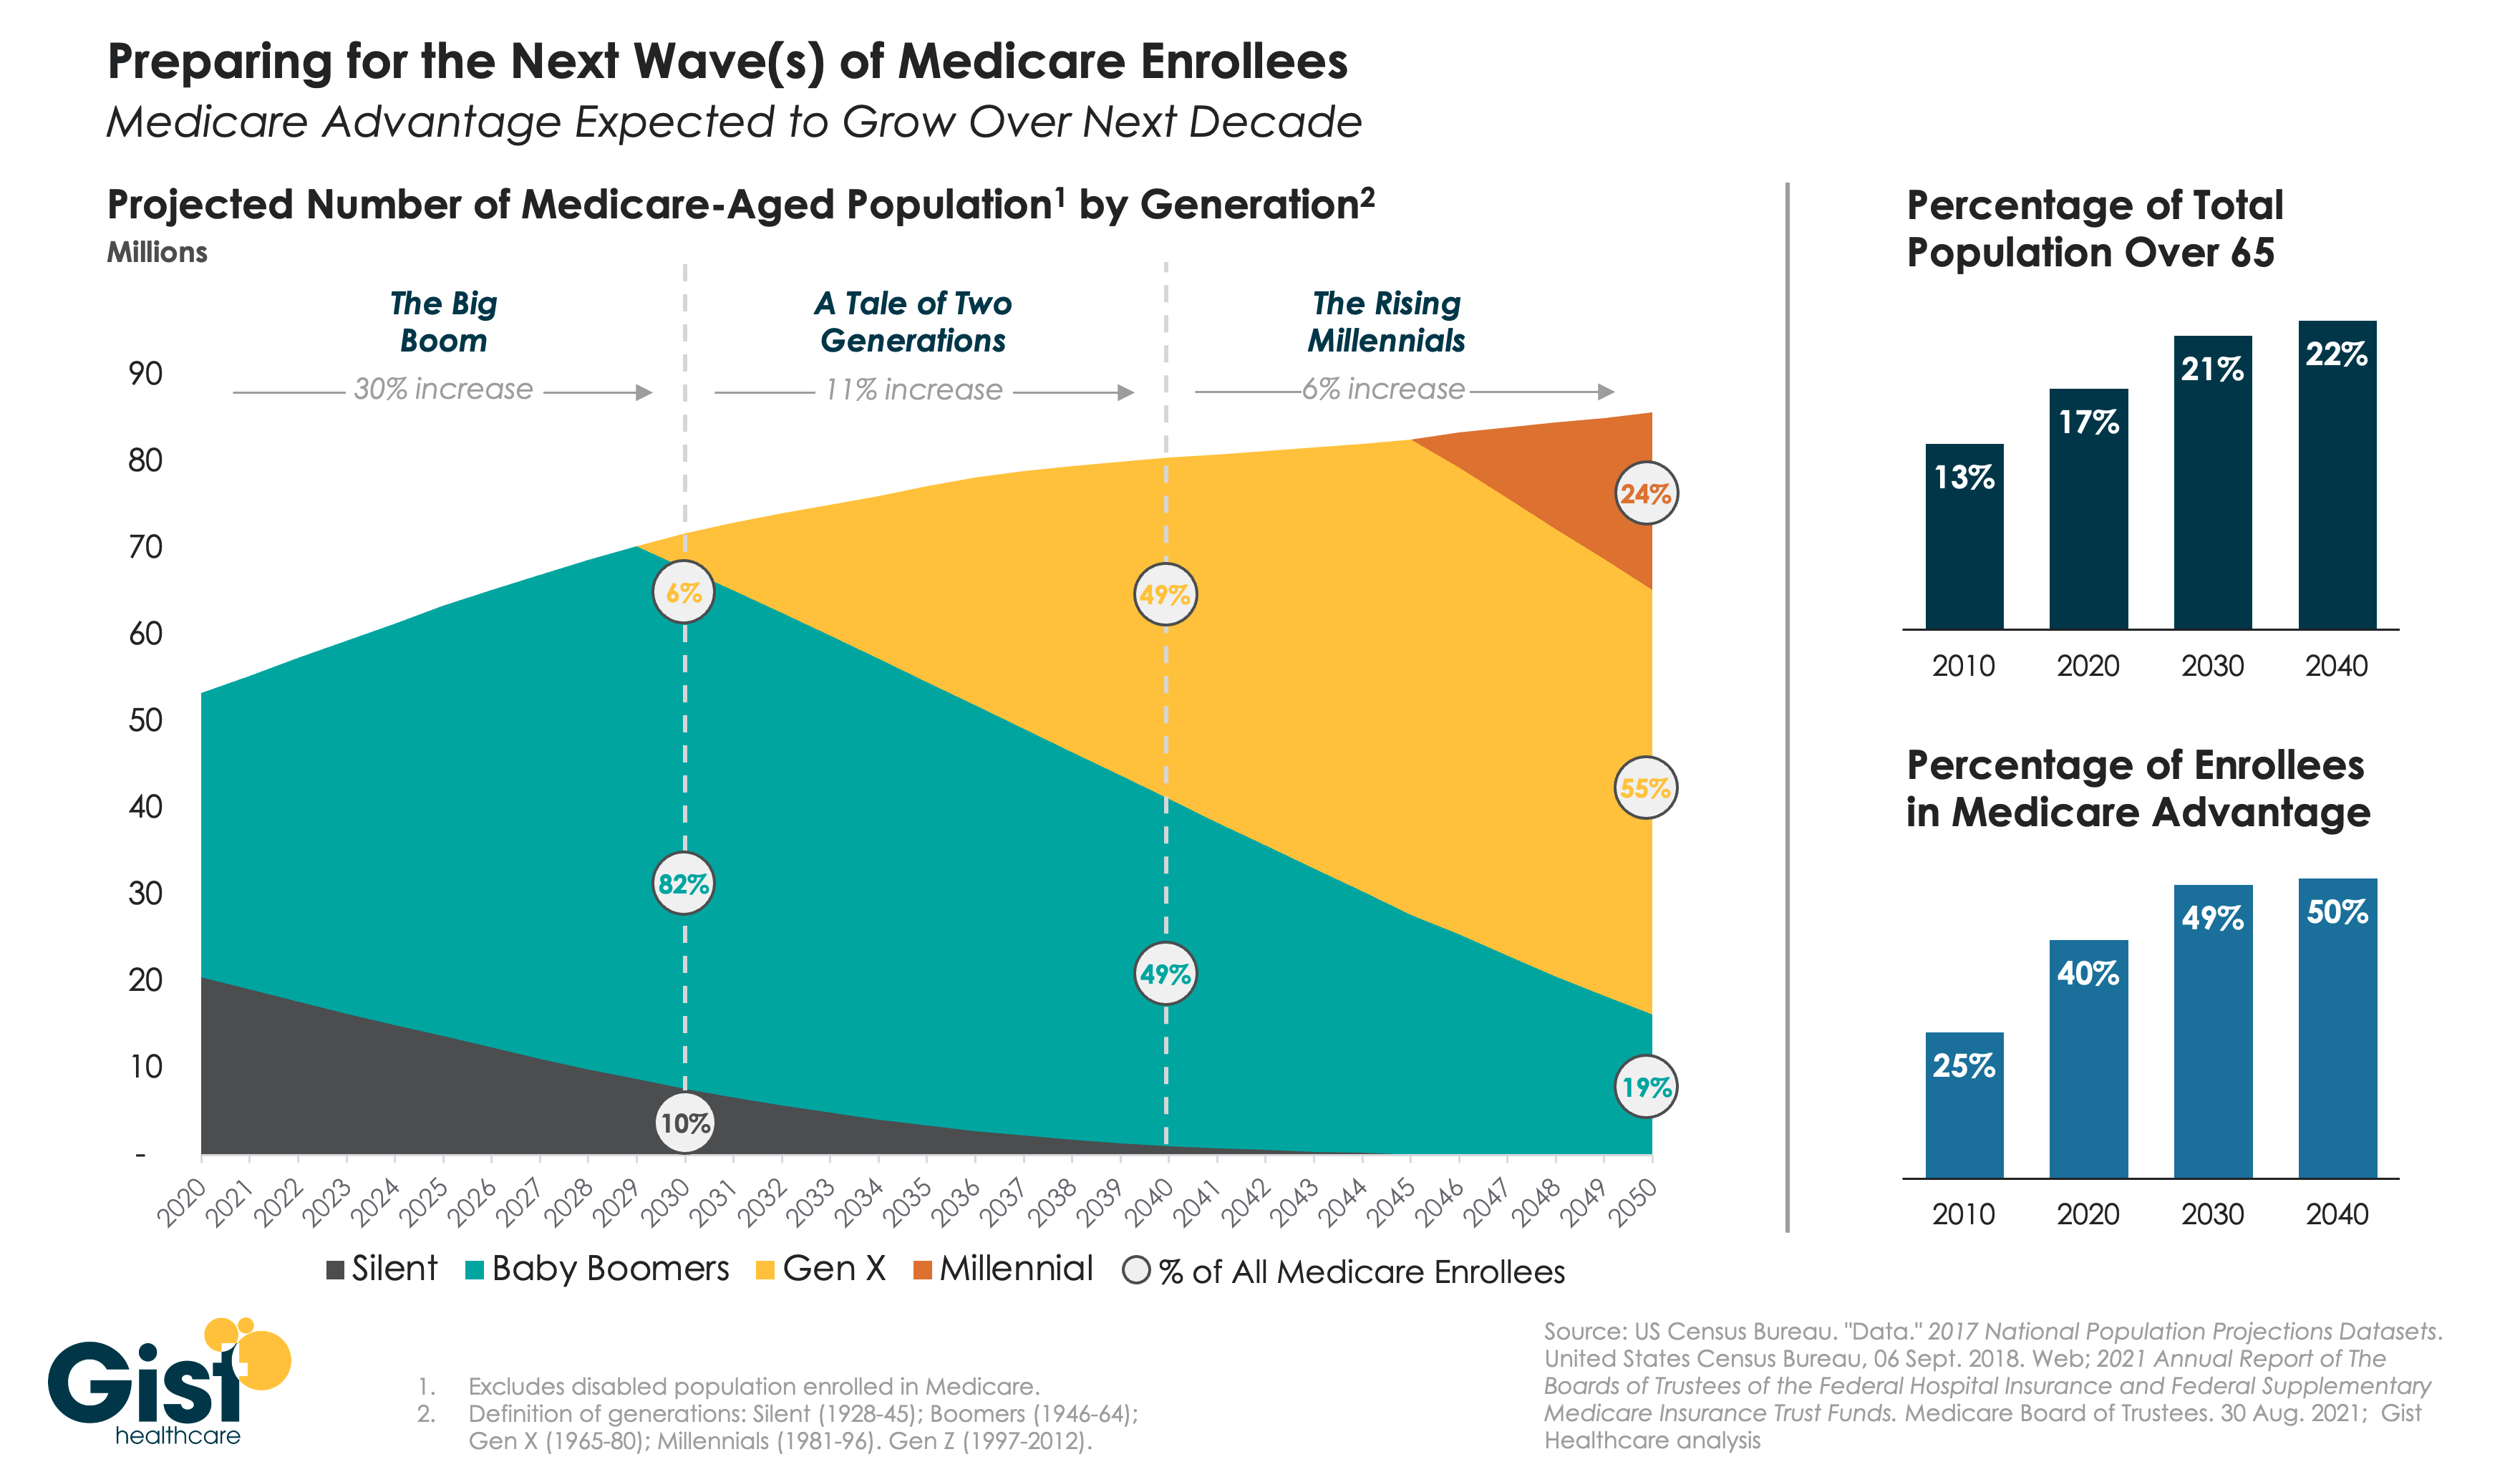 Preparing for generations of Medicare growth